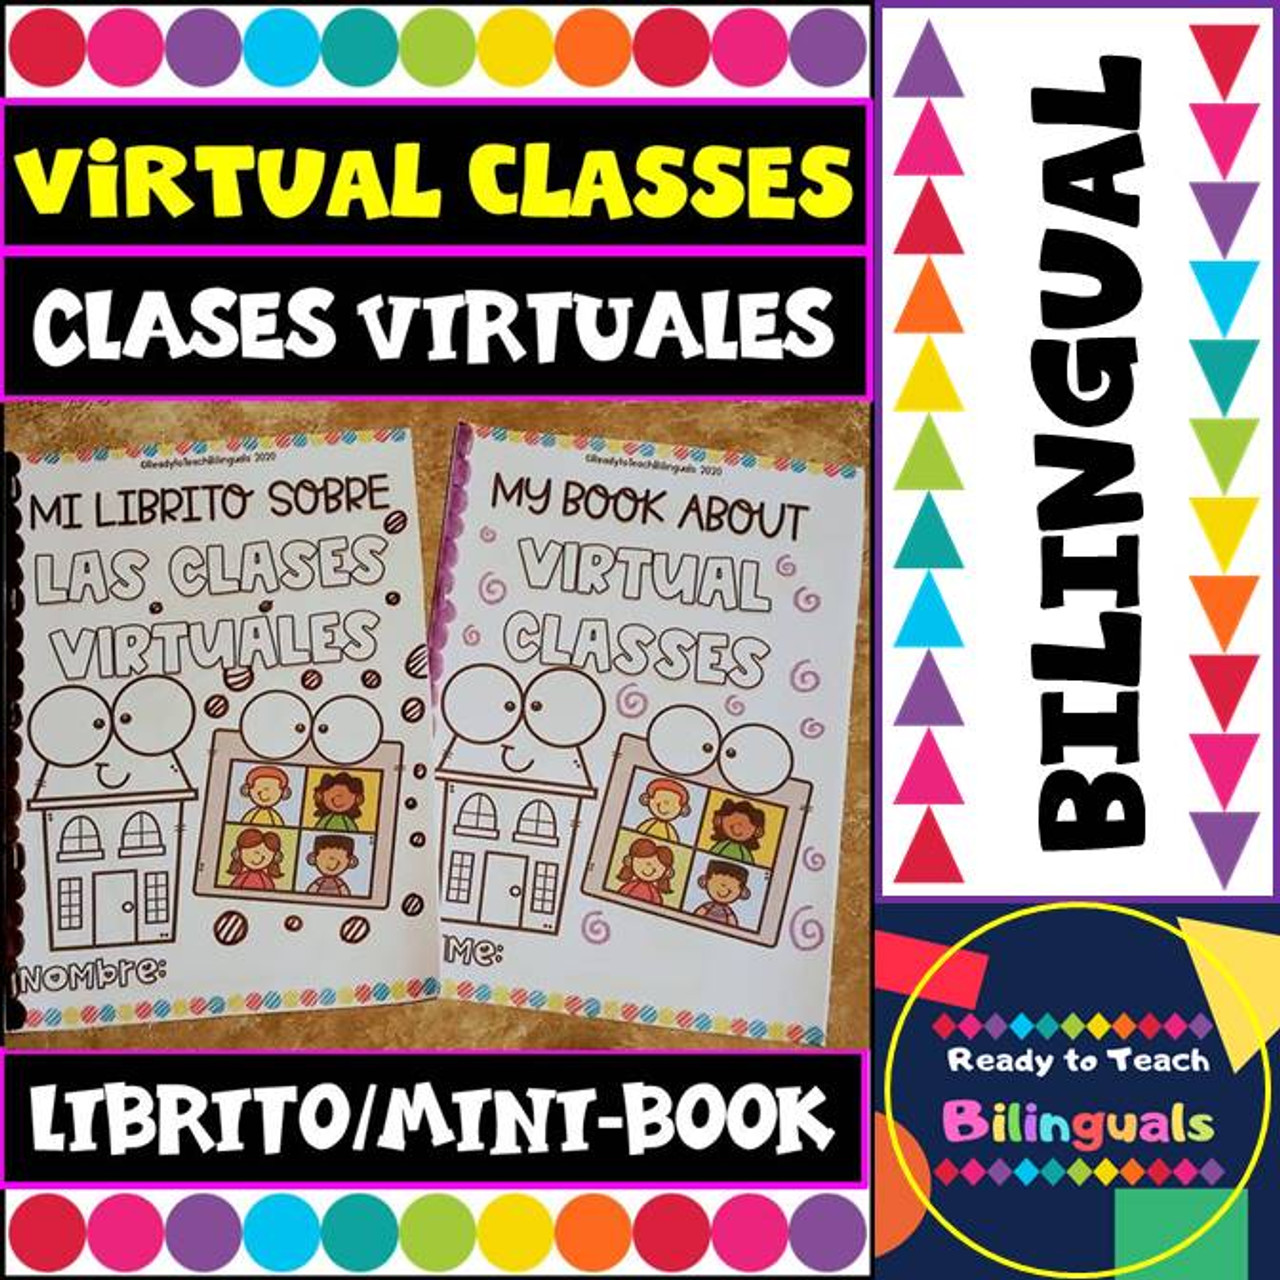 Virtual classes Booklet - Clases Virtuales - Distance Learning - Bilingual Set